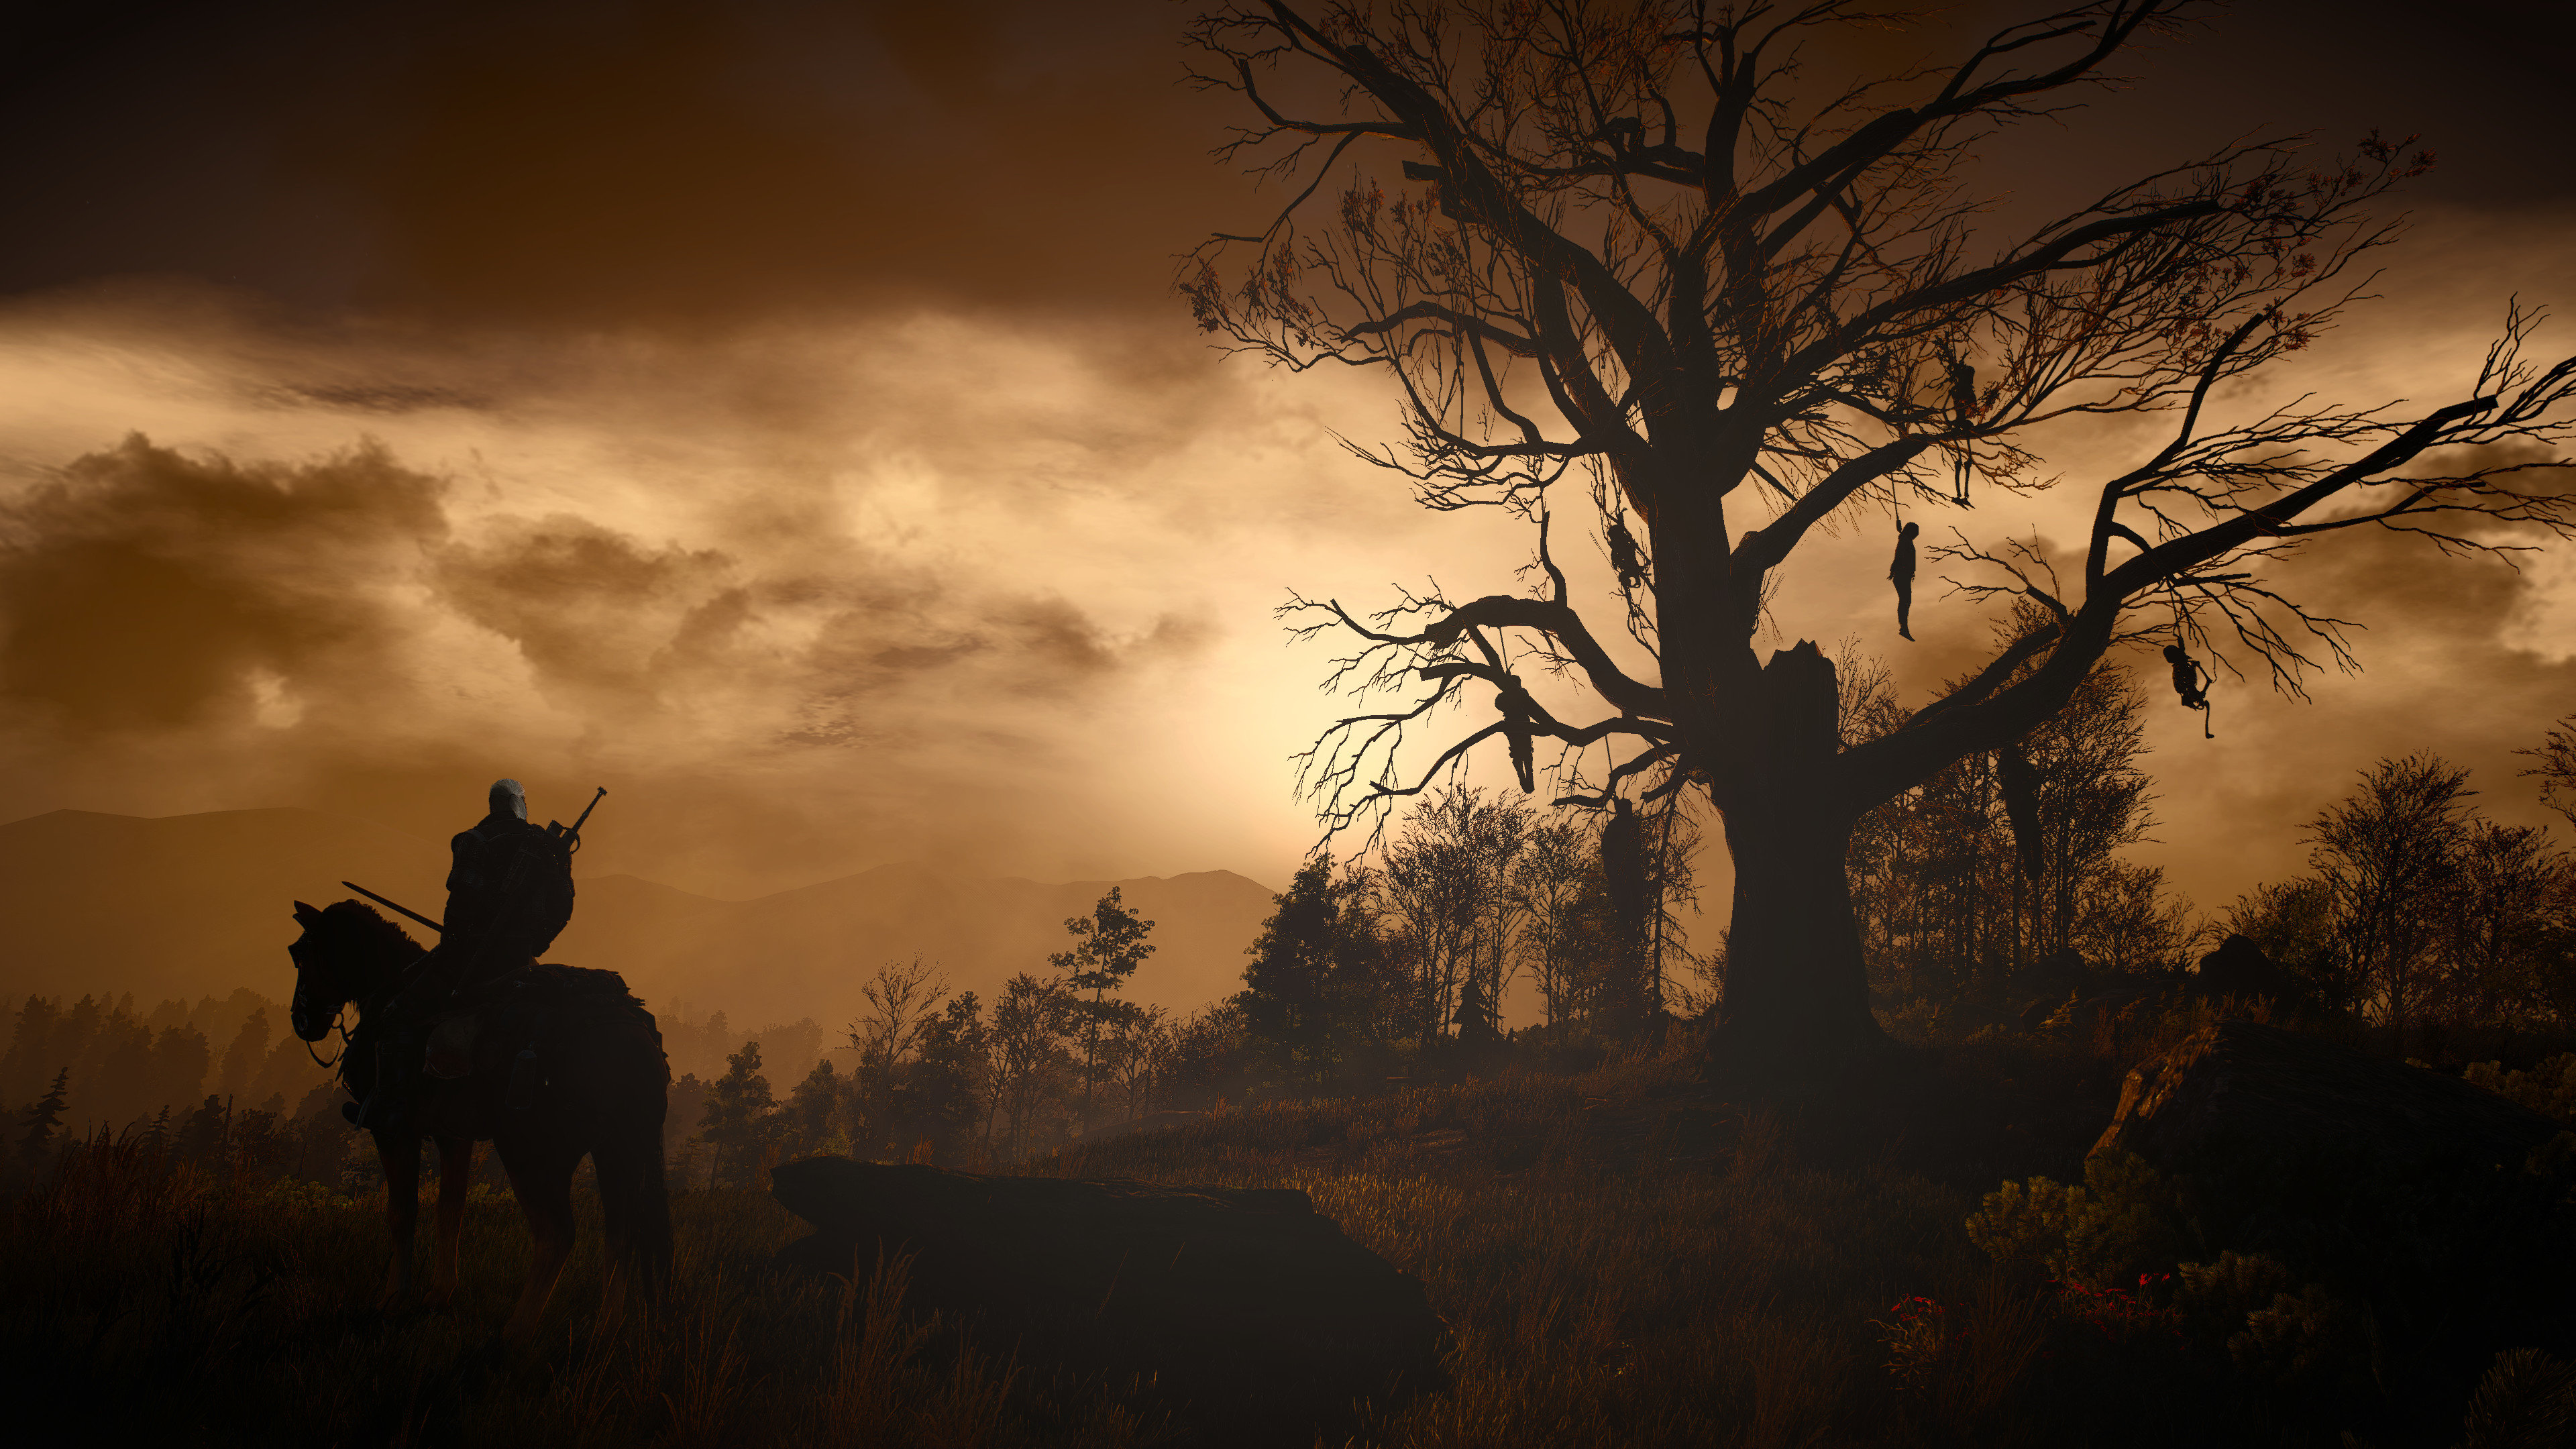 Awesome The Witcher 3 Wild Hunt Free Wallpaper Id 18062 For 4k